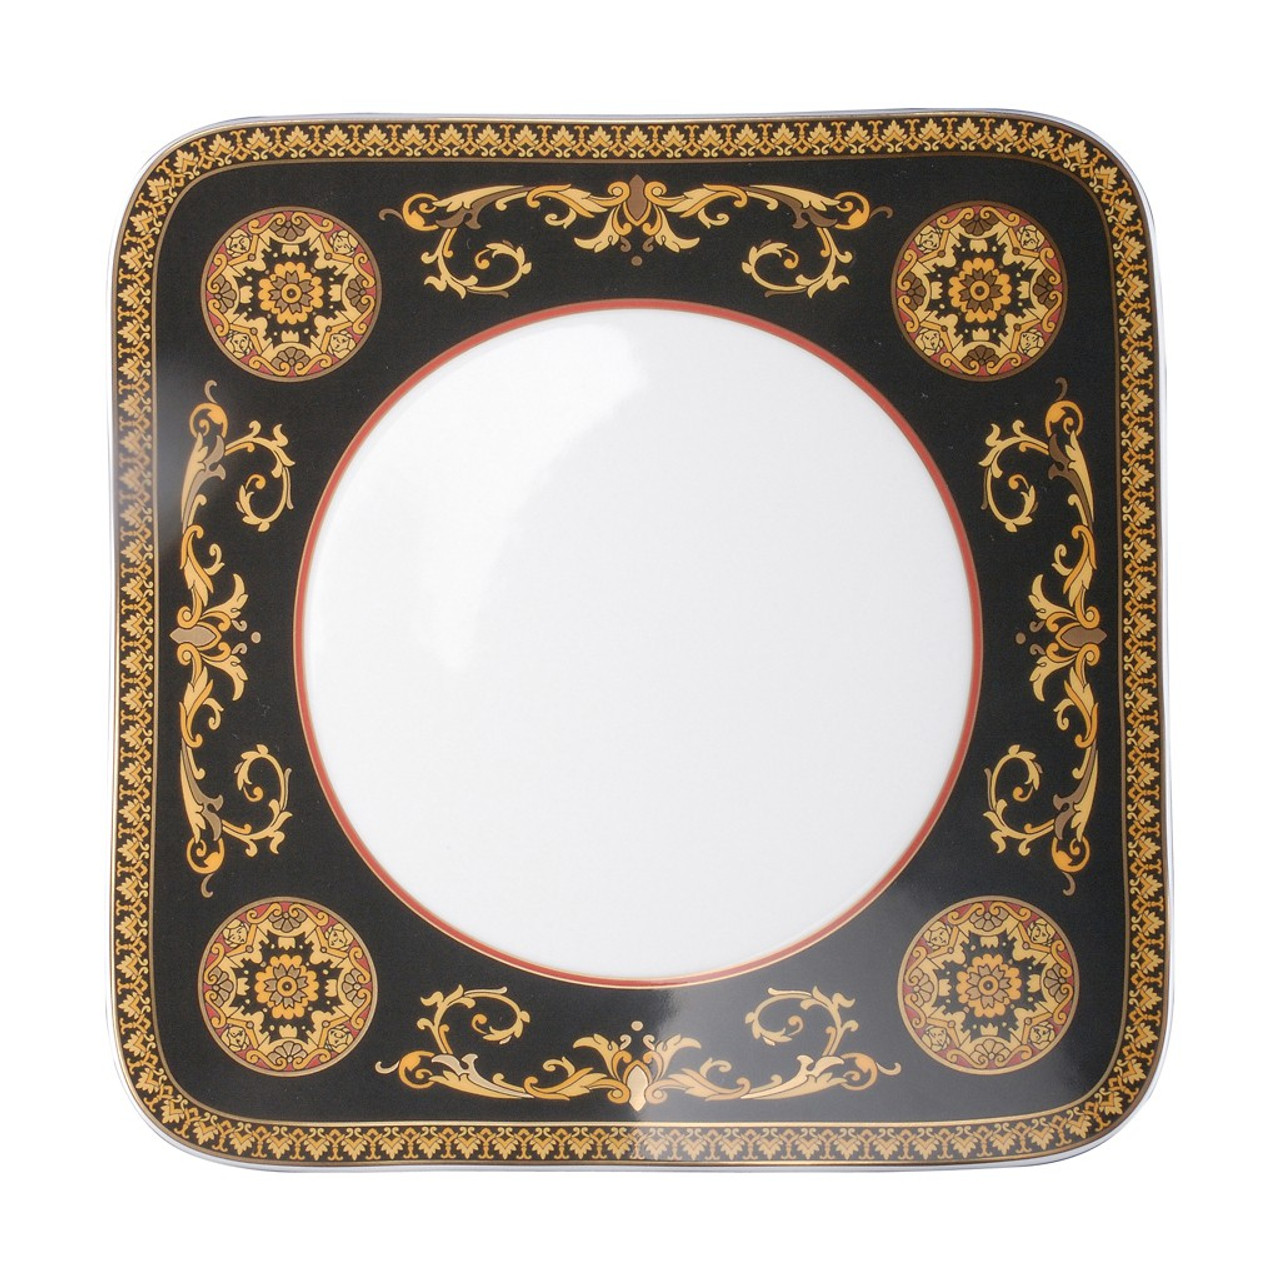 Dinner Plate Square 10 1/2 inch | Versace Medusa Red  sc 1 st  Rosenthal & Dinner Plate Square 10 1/2 inch | Medusa Red| Rosenthal Shop